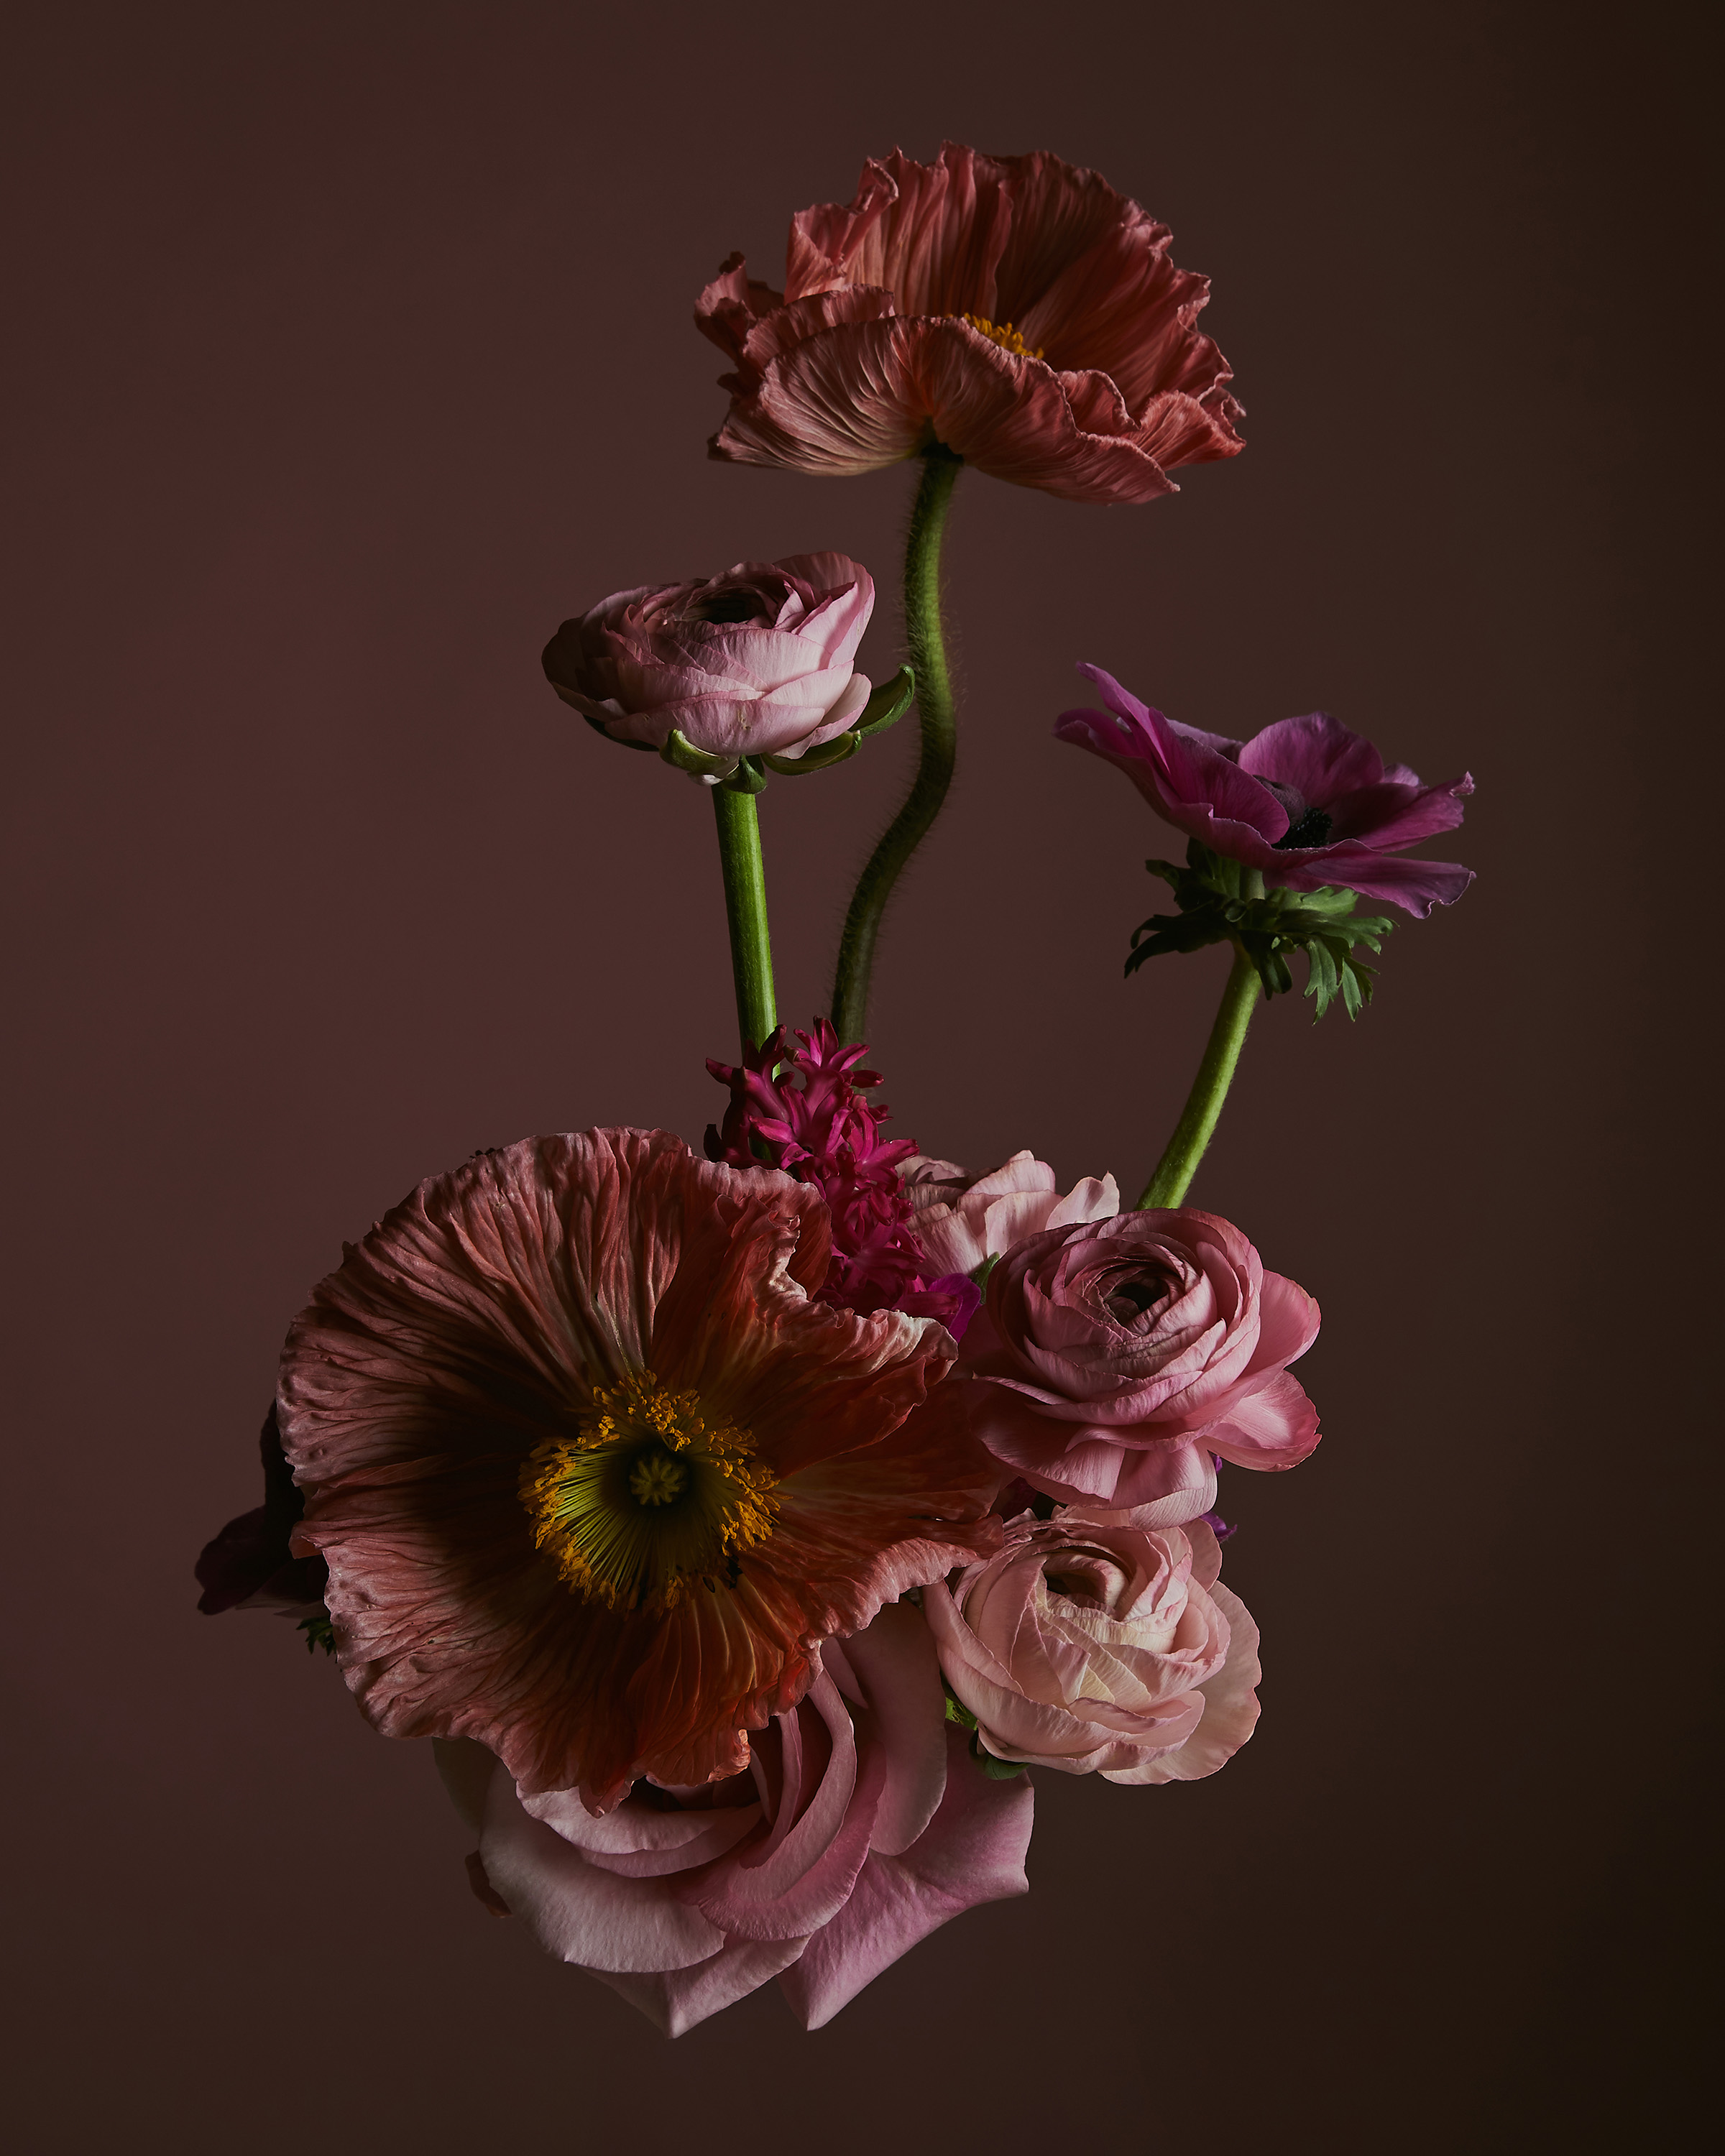 Rikki-Ward-Photographer_FLOWER_SCULPTURES_1